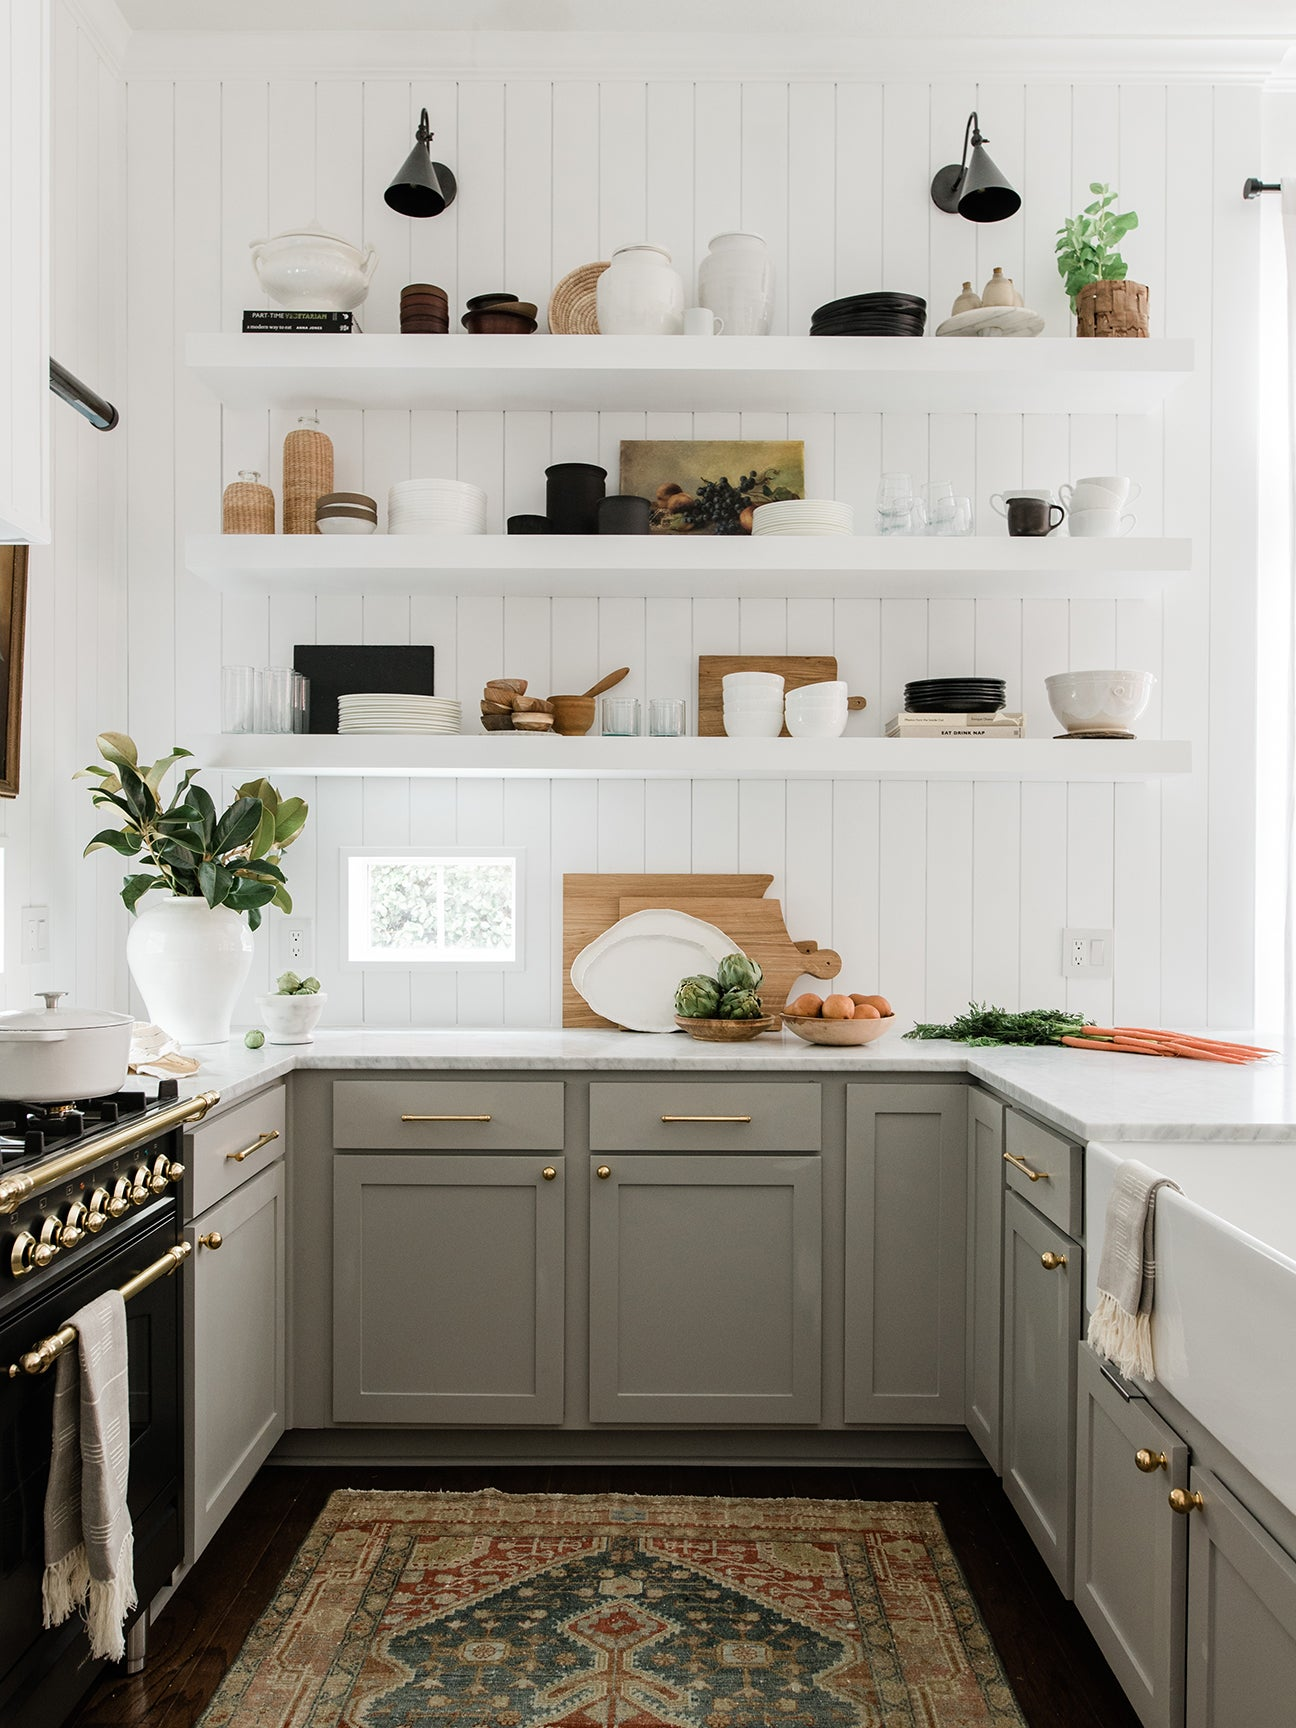 00-FEATURE-kitchen-organizing-tips-domino